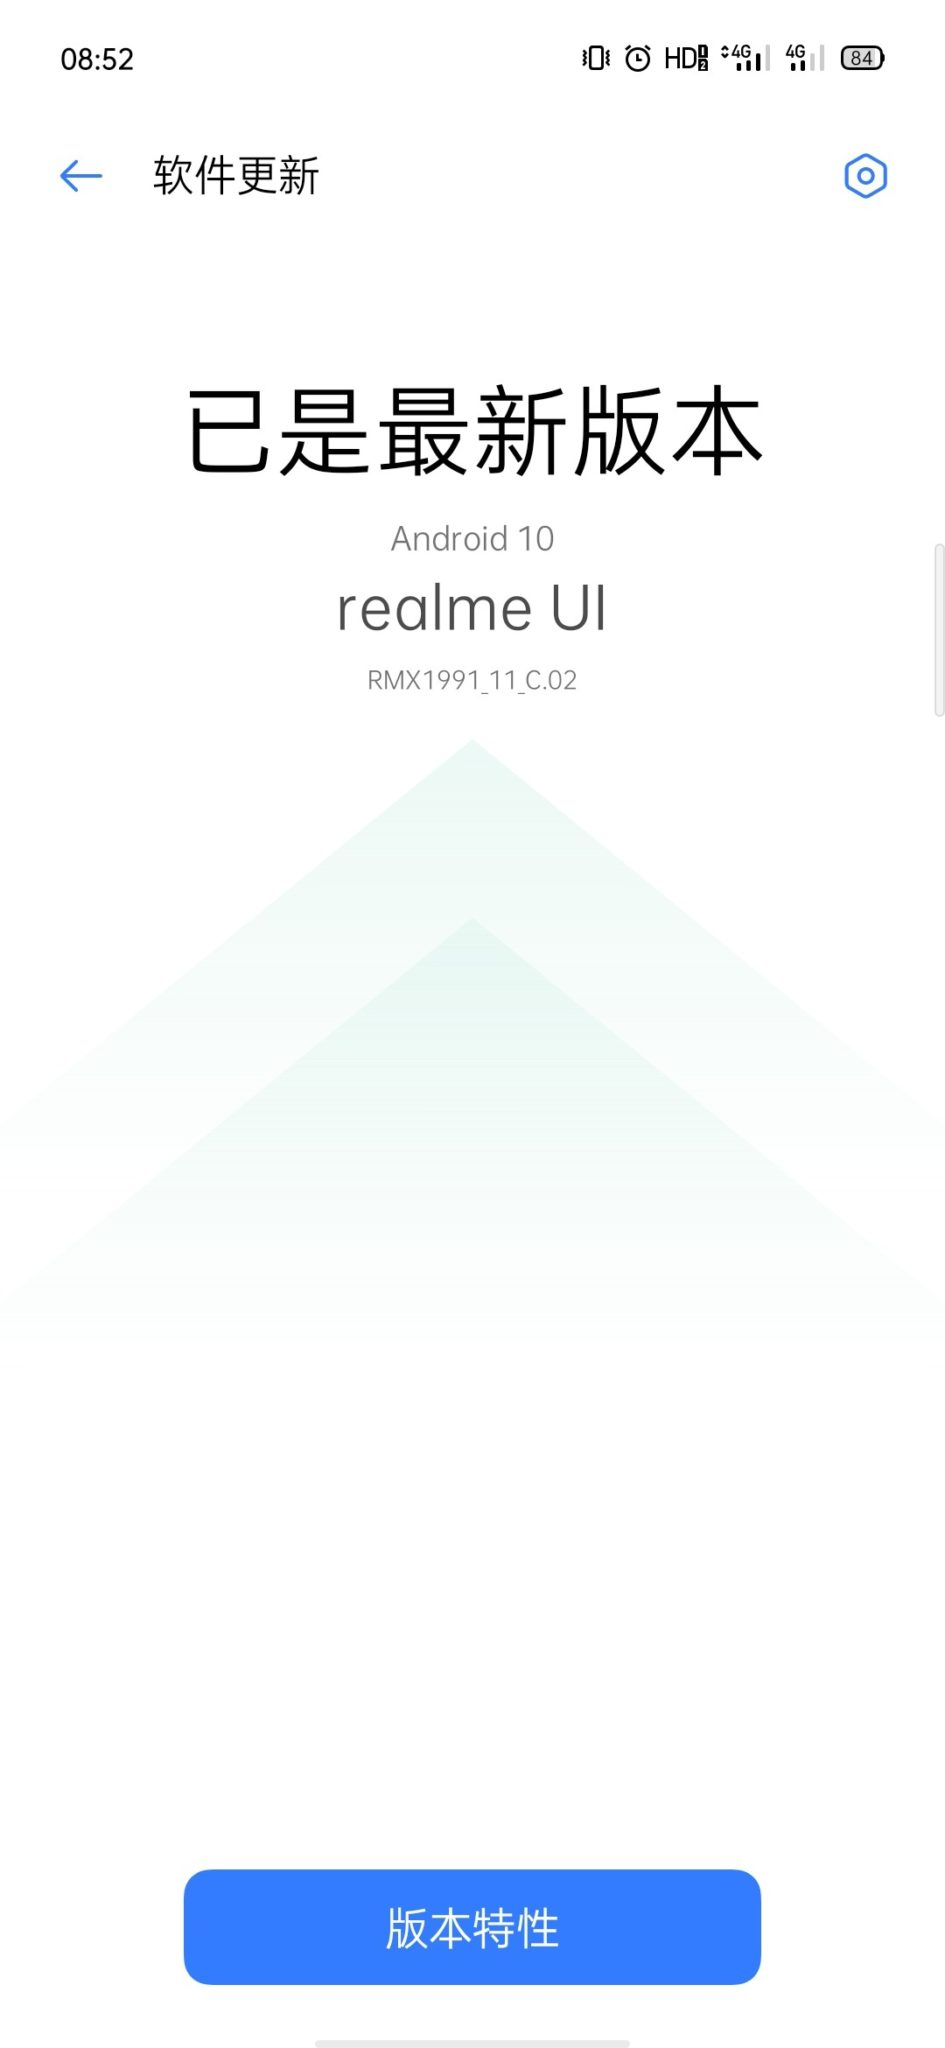 Realme X2 Android 10 (Realme UI) update rolls out to early testers